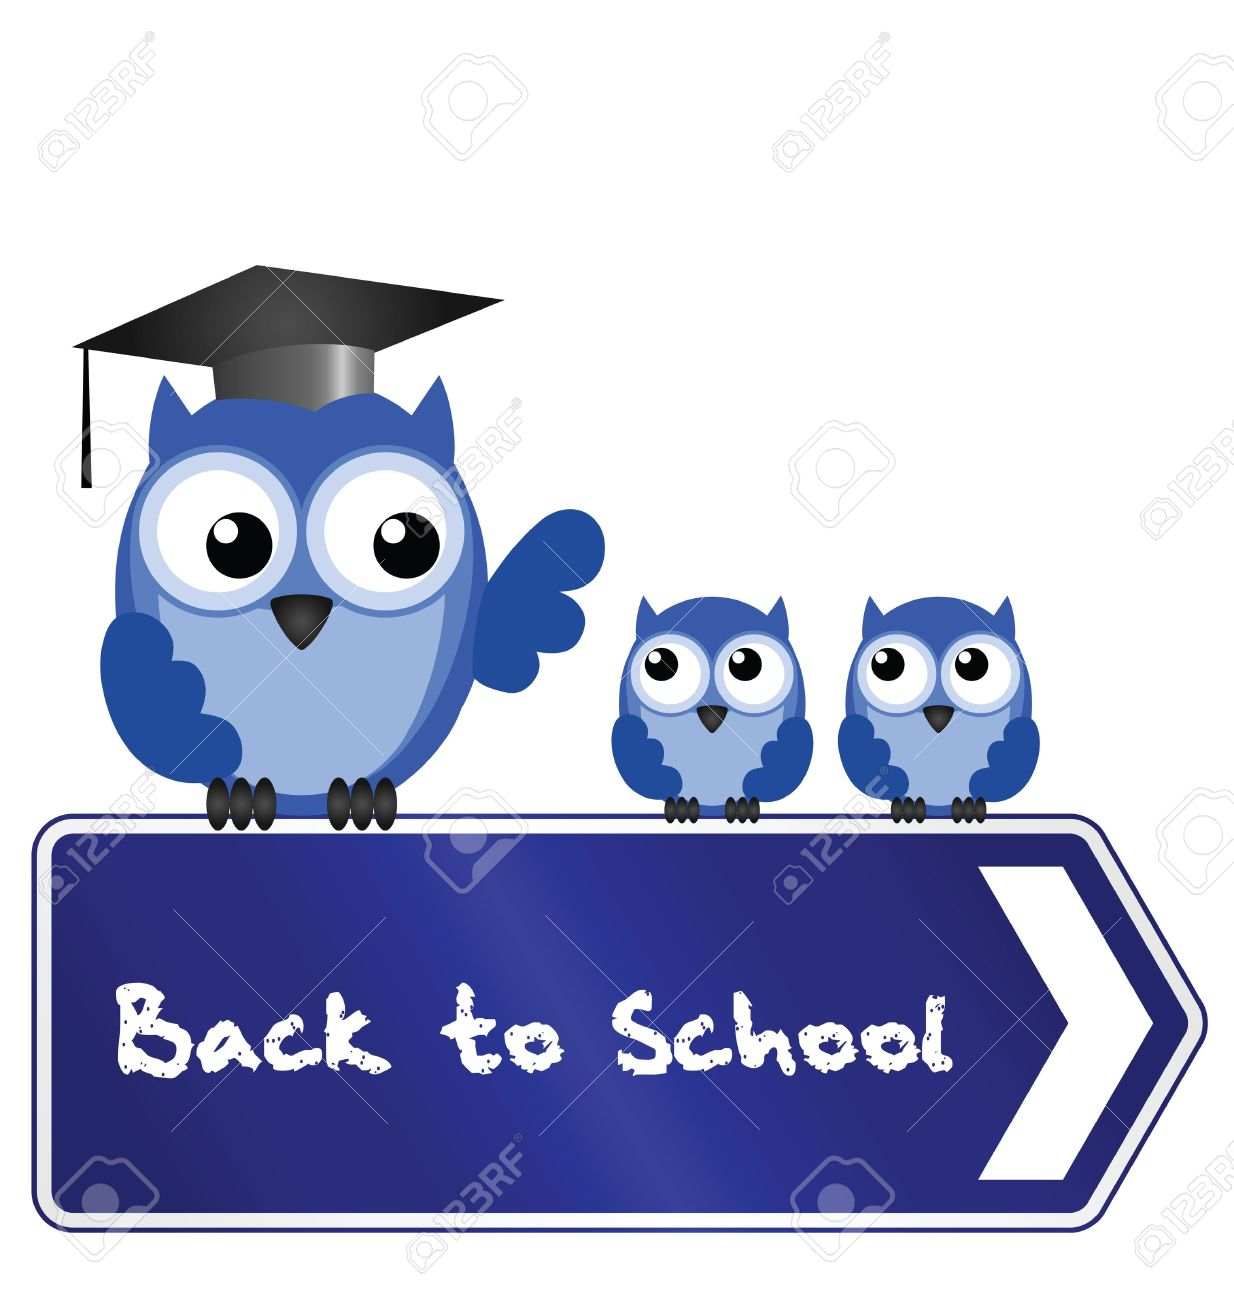 Back to school message clipart download Owl Teacher And Pupils With Back To School Message On Sign Royalty ... download